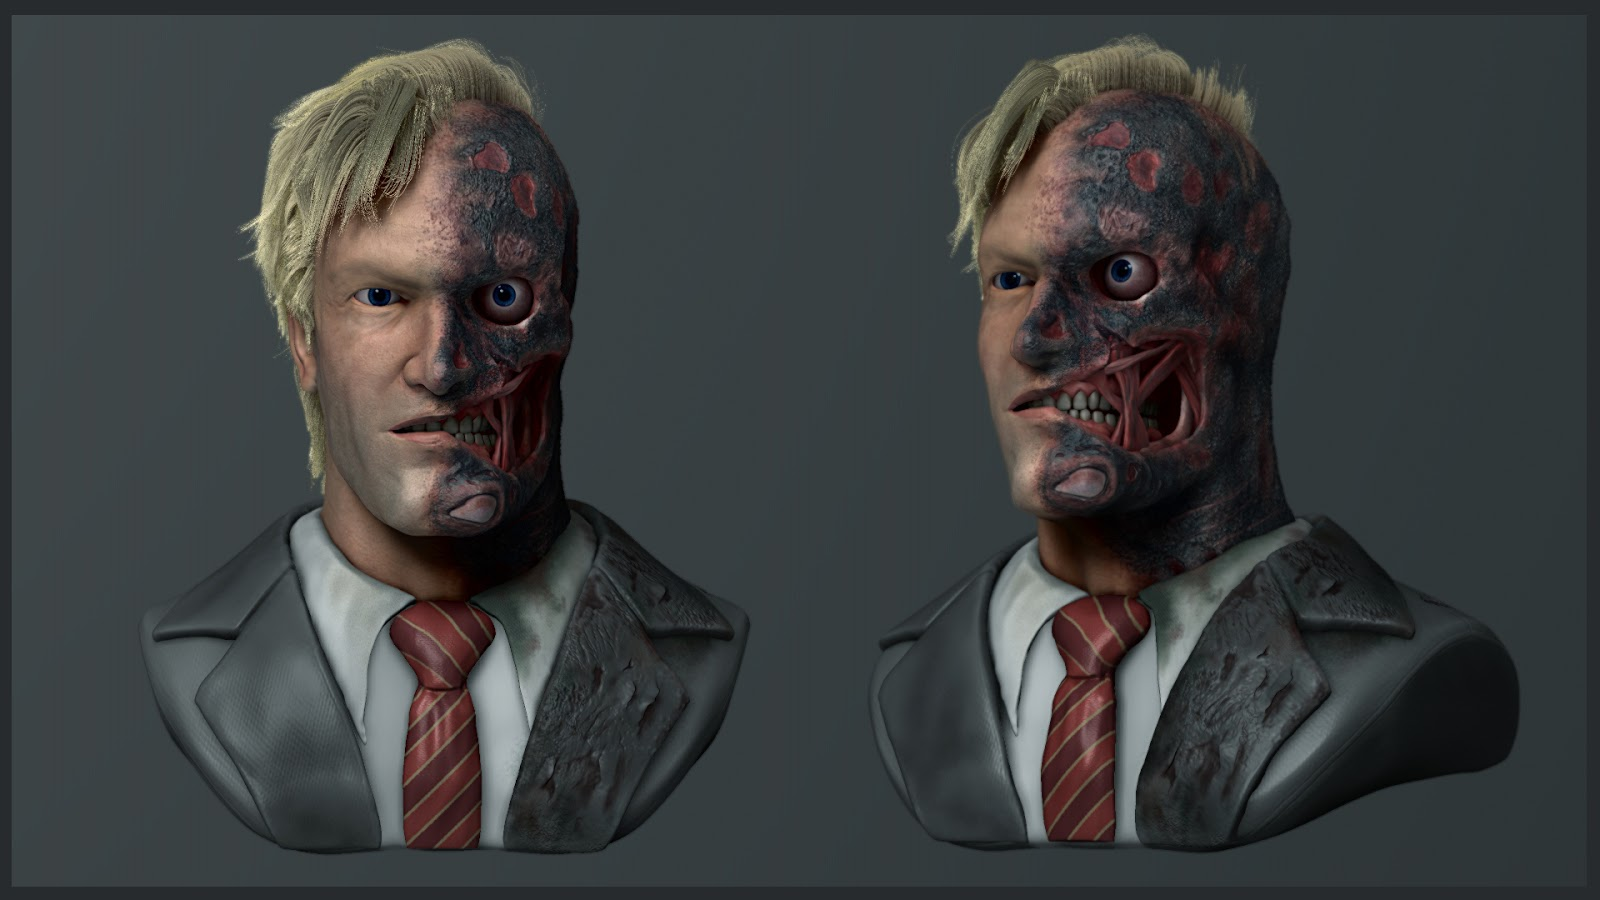 Harvey Dent / Two face_Batman Dark Knight - Final Render: adiicgworks.blogspot.com/2013_08_01_archive.html